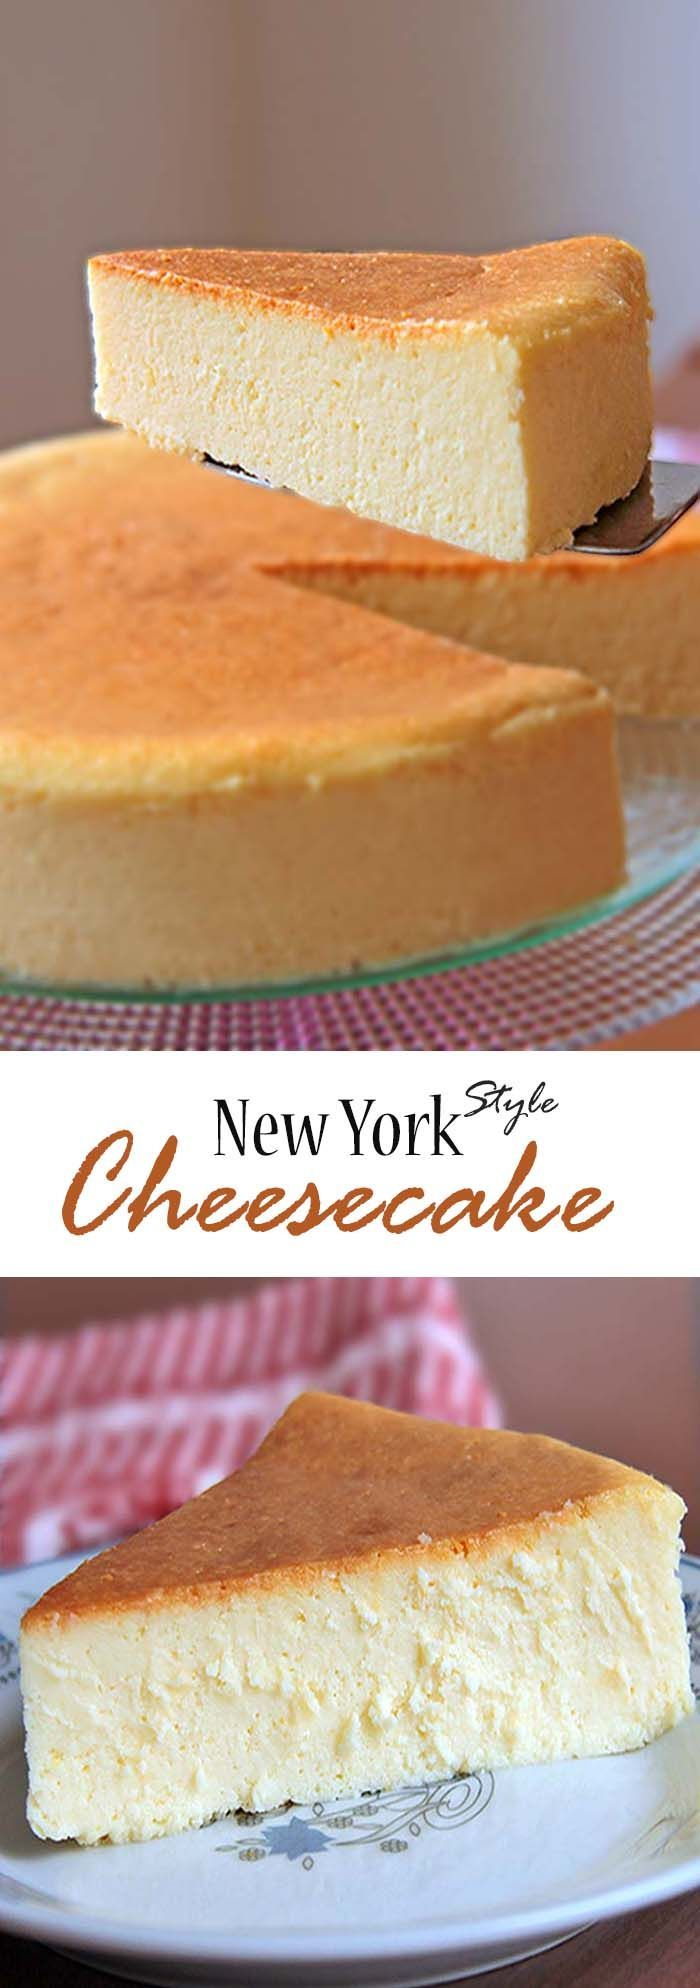 New York Style Cheesecake -- a creamy smooth, lightly sweet treat, with a touch of lemon! http://sugarapron.com/2015/02/10/new-york-style-cheesecake/2/